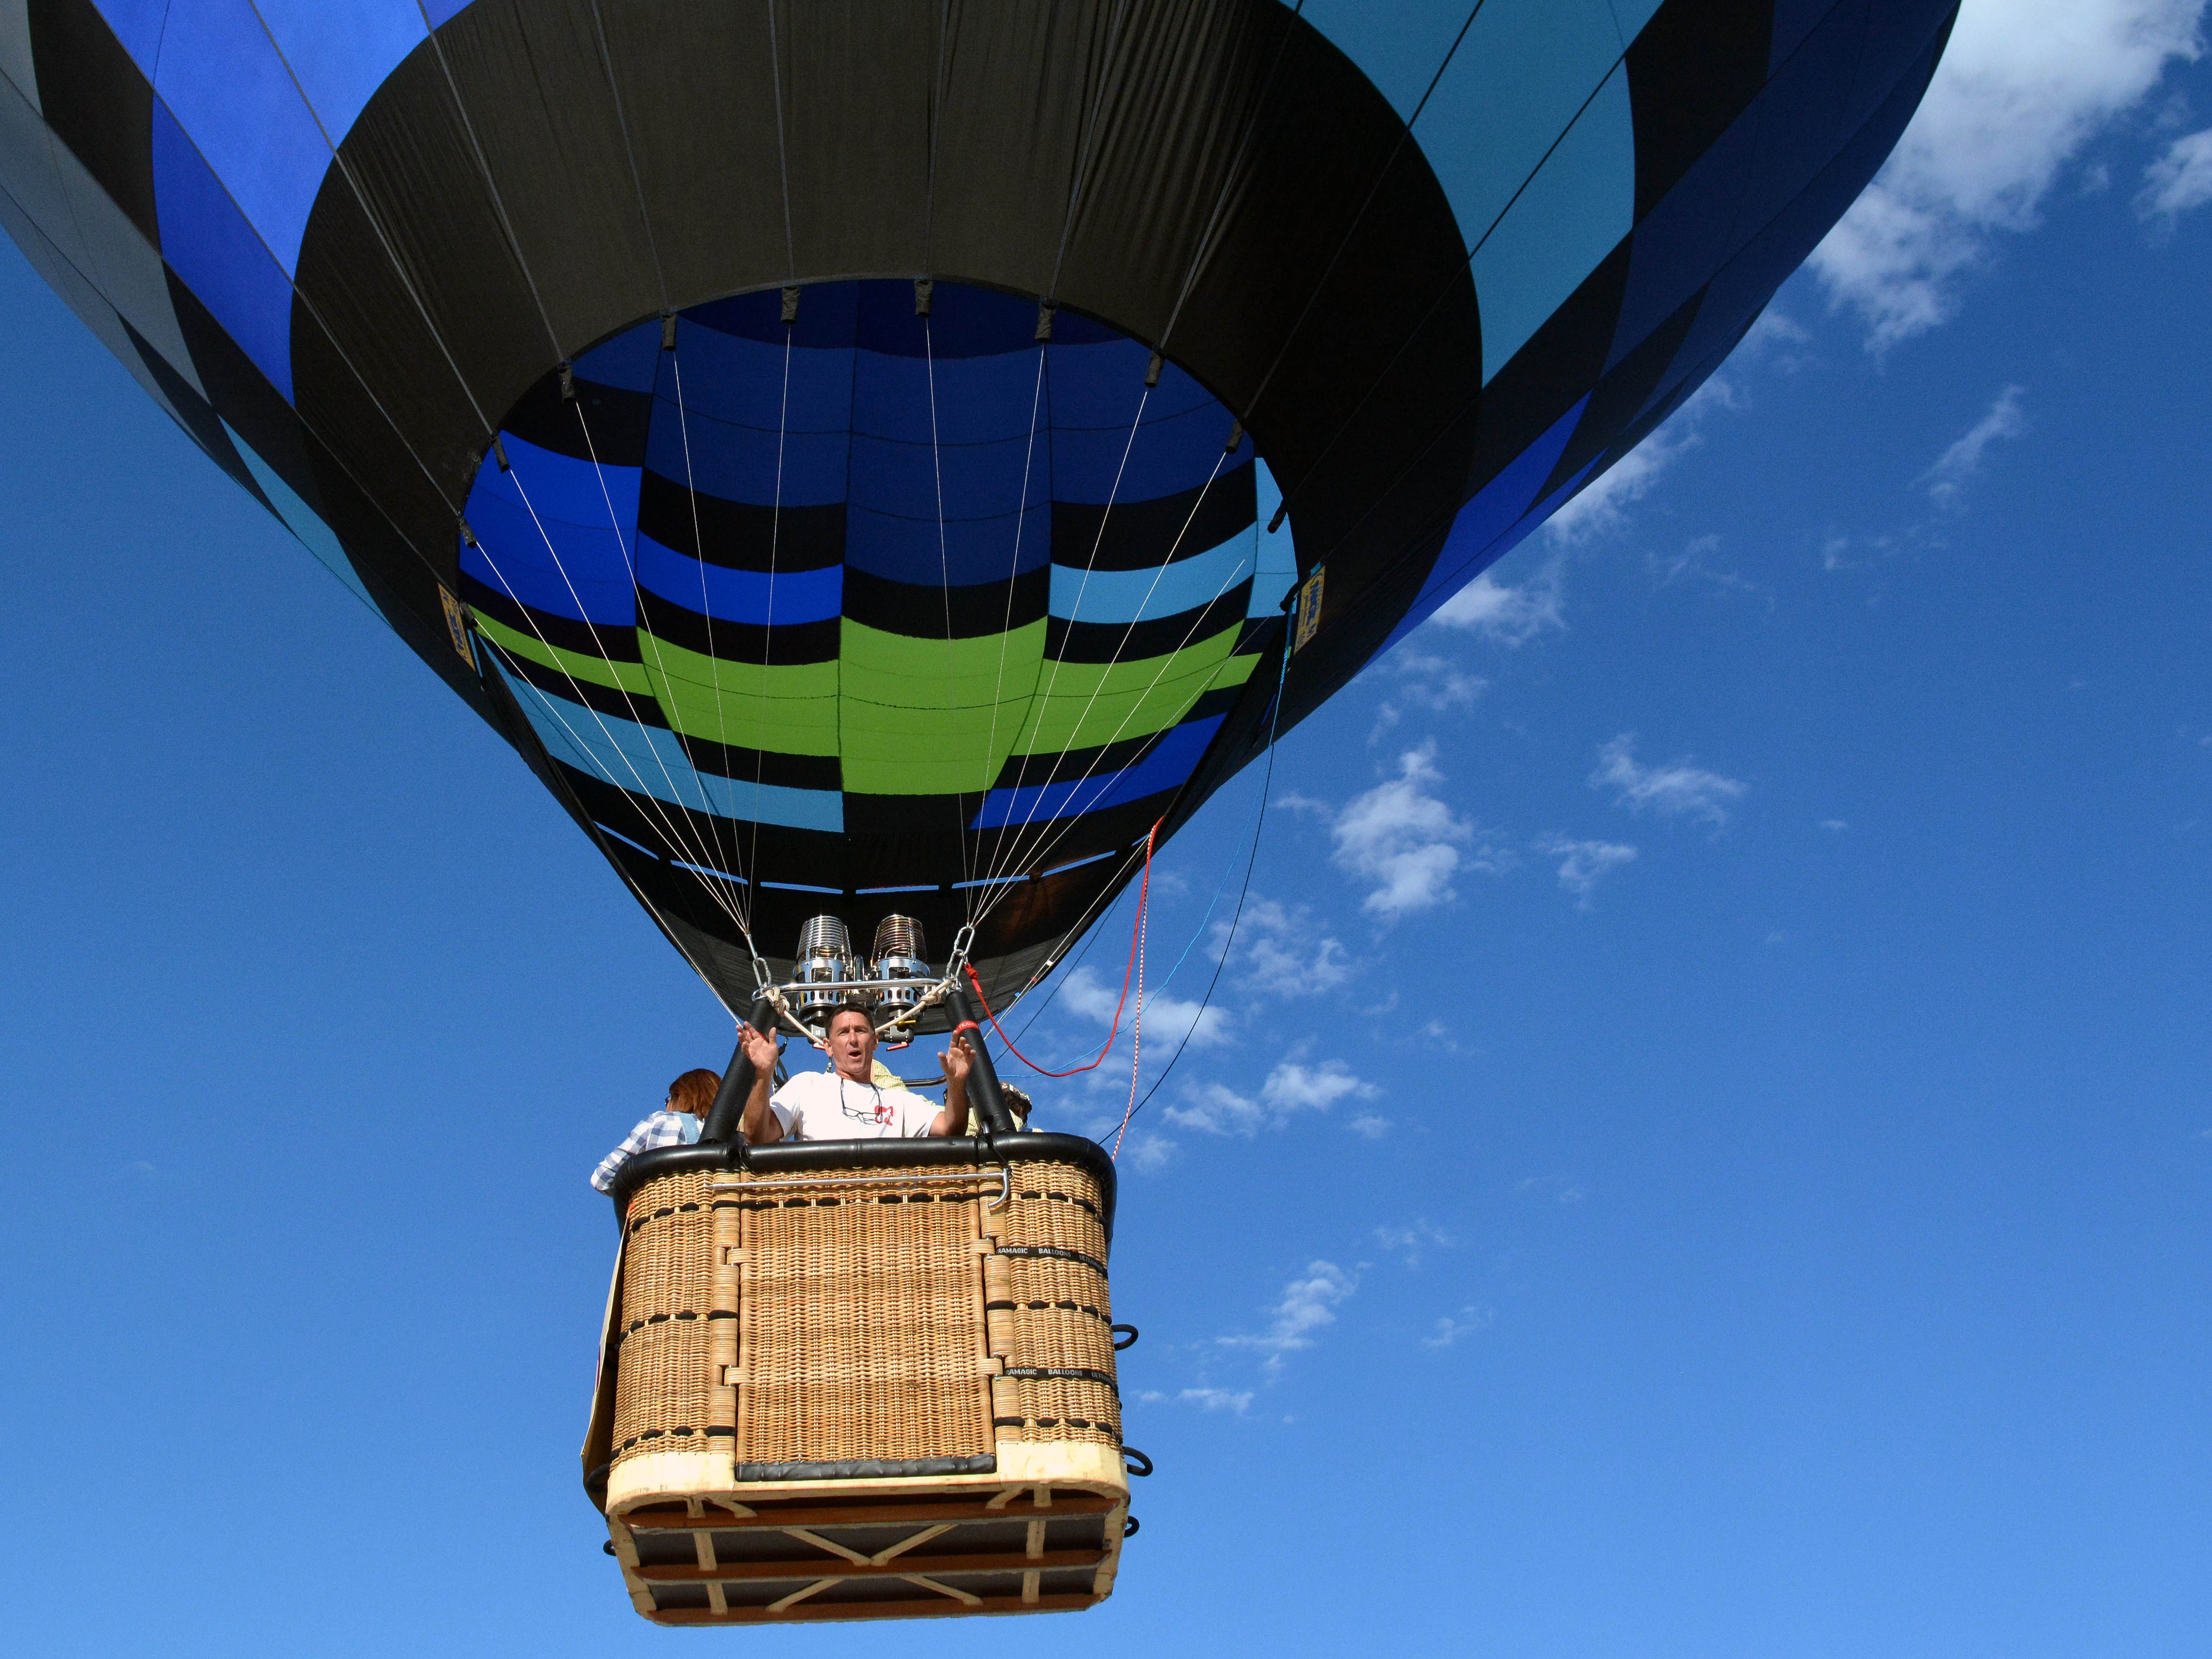 The crew of a hot air balloon wave to the crowd below Saturday, Sept. 15, 2018 at the White Sands Balloon Invitational.